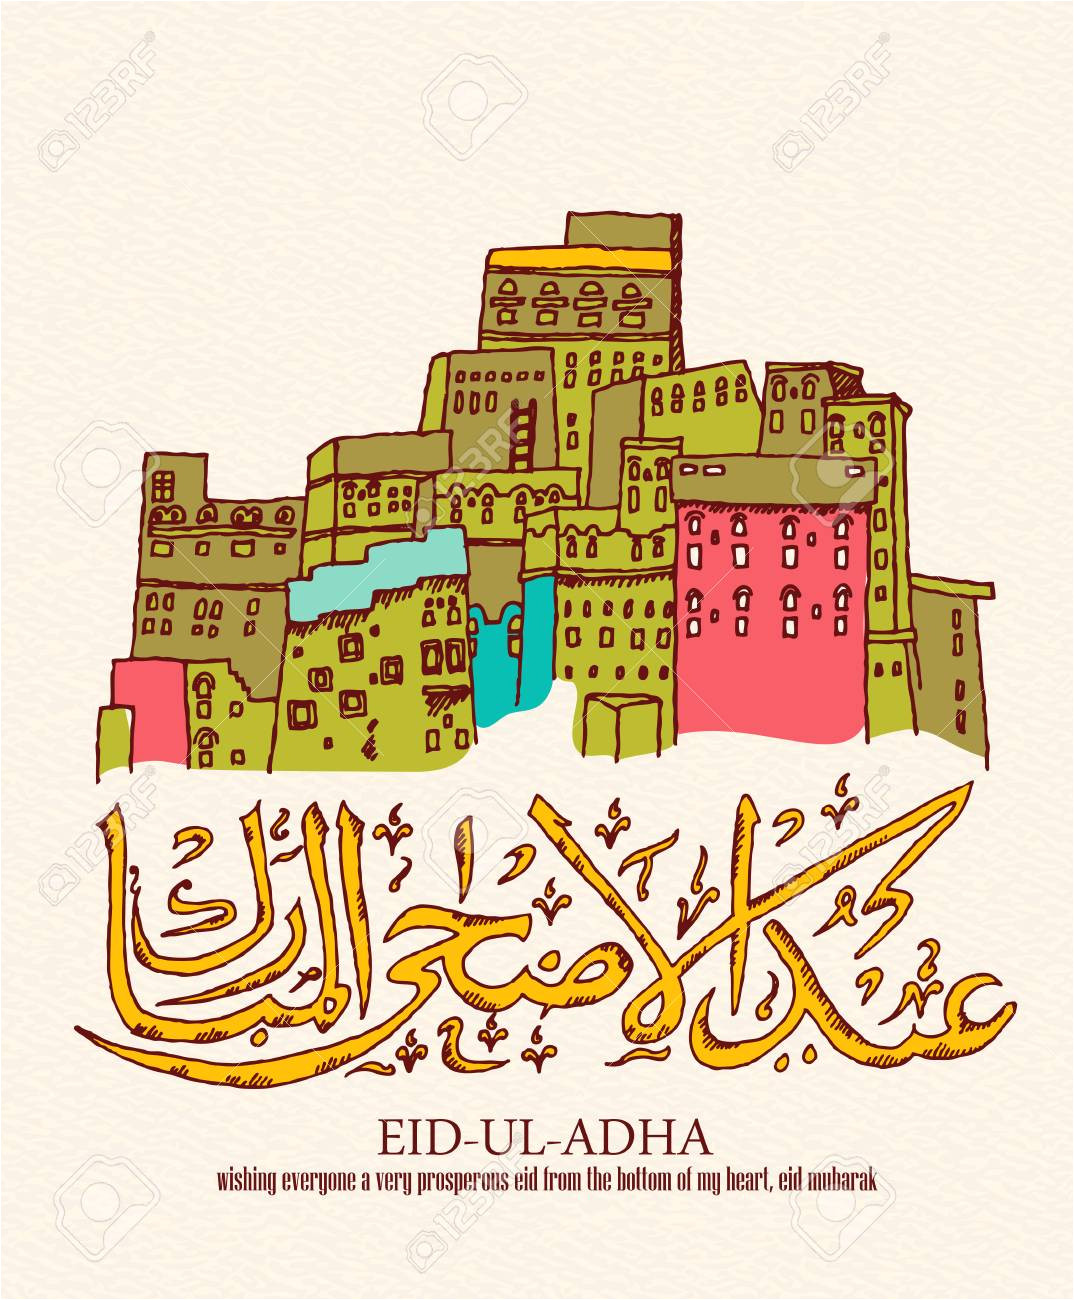 44257645 arabic islamic calligraphy of text eid ul adha and old city in retro style for muslim community fest jpg